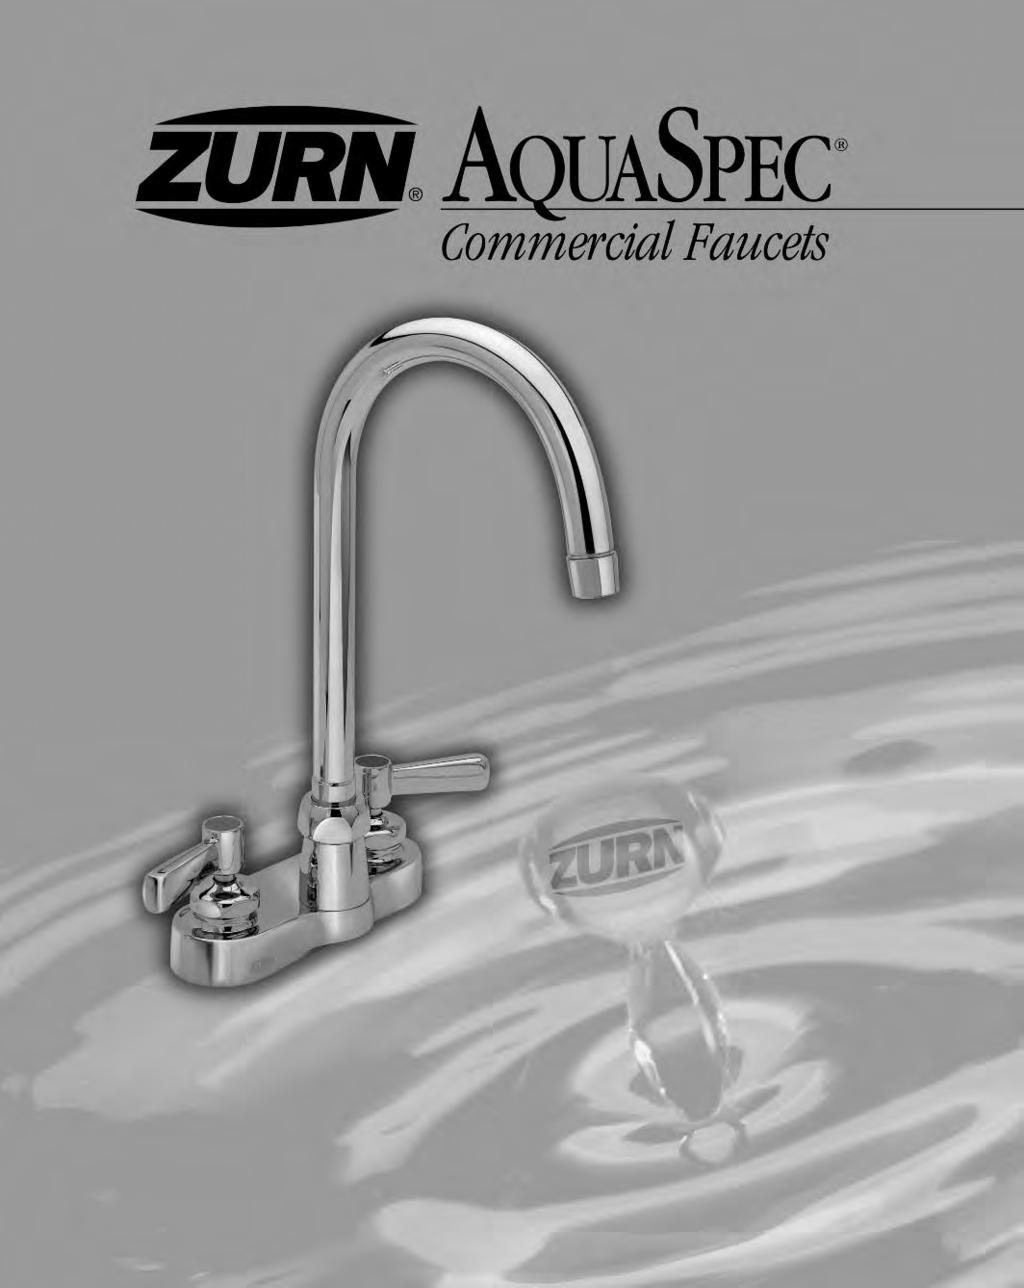 AQUASPEC COMMERCIAL FAUCETS Zurn AquaSpec Commercial